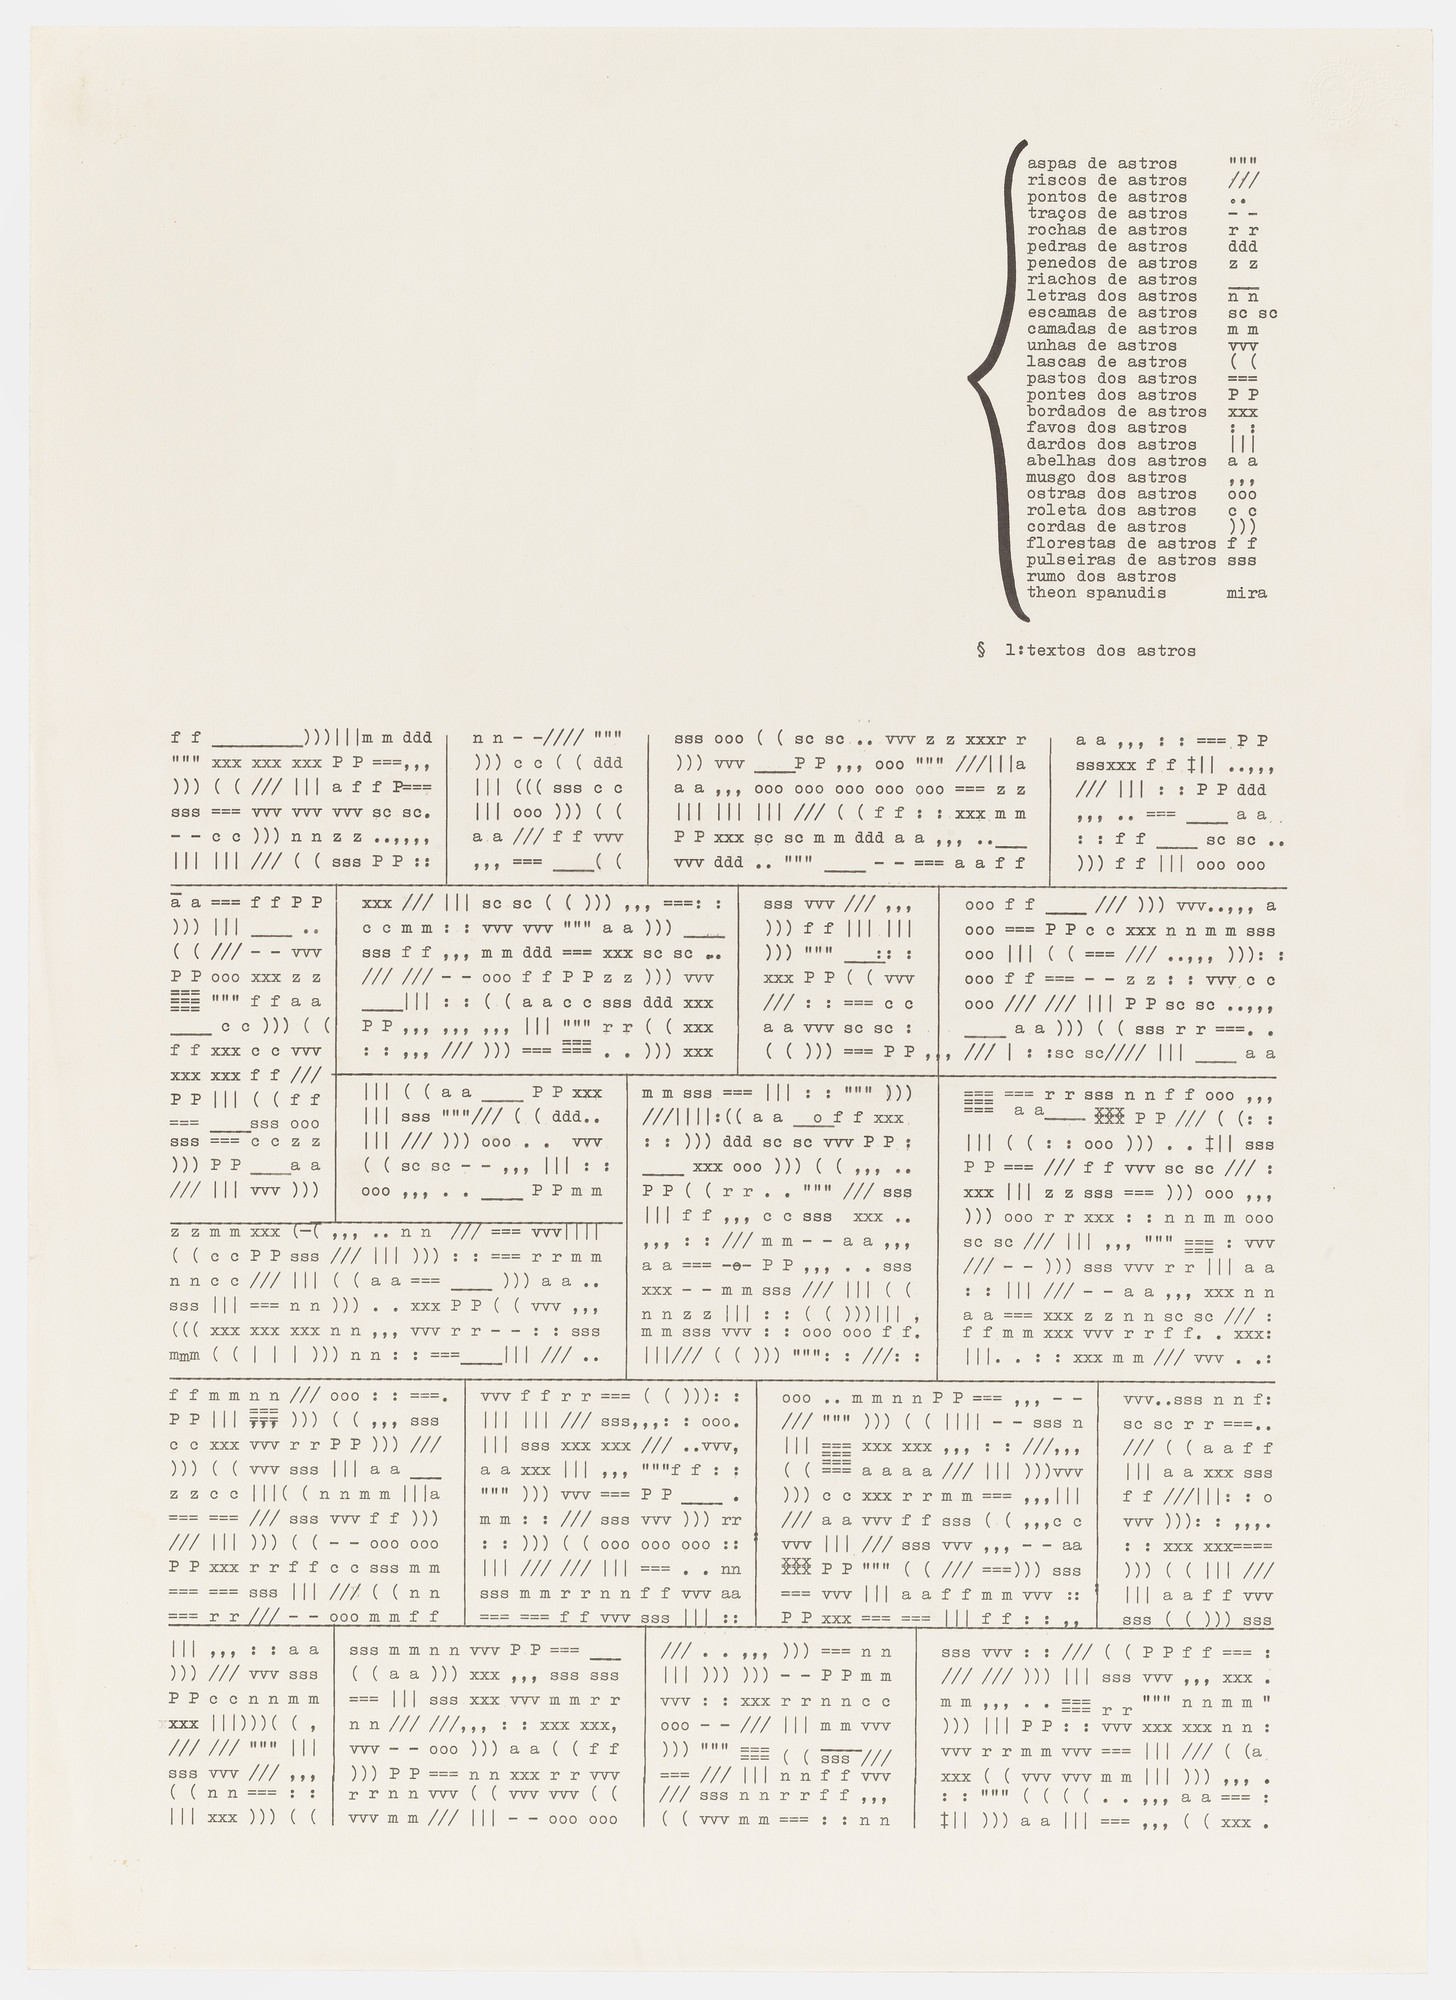 Mira Schendel. Untitled from the series Typed Writings (Datiloscritos). (c. 1970s)